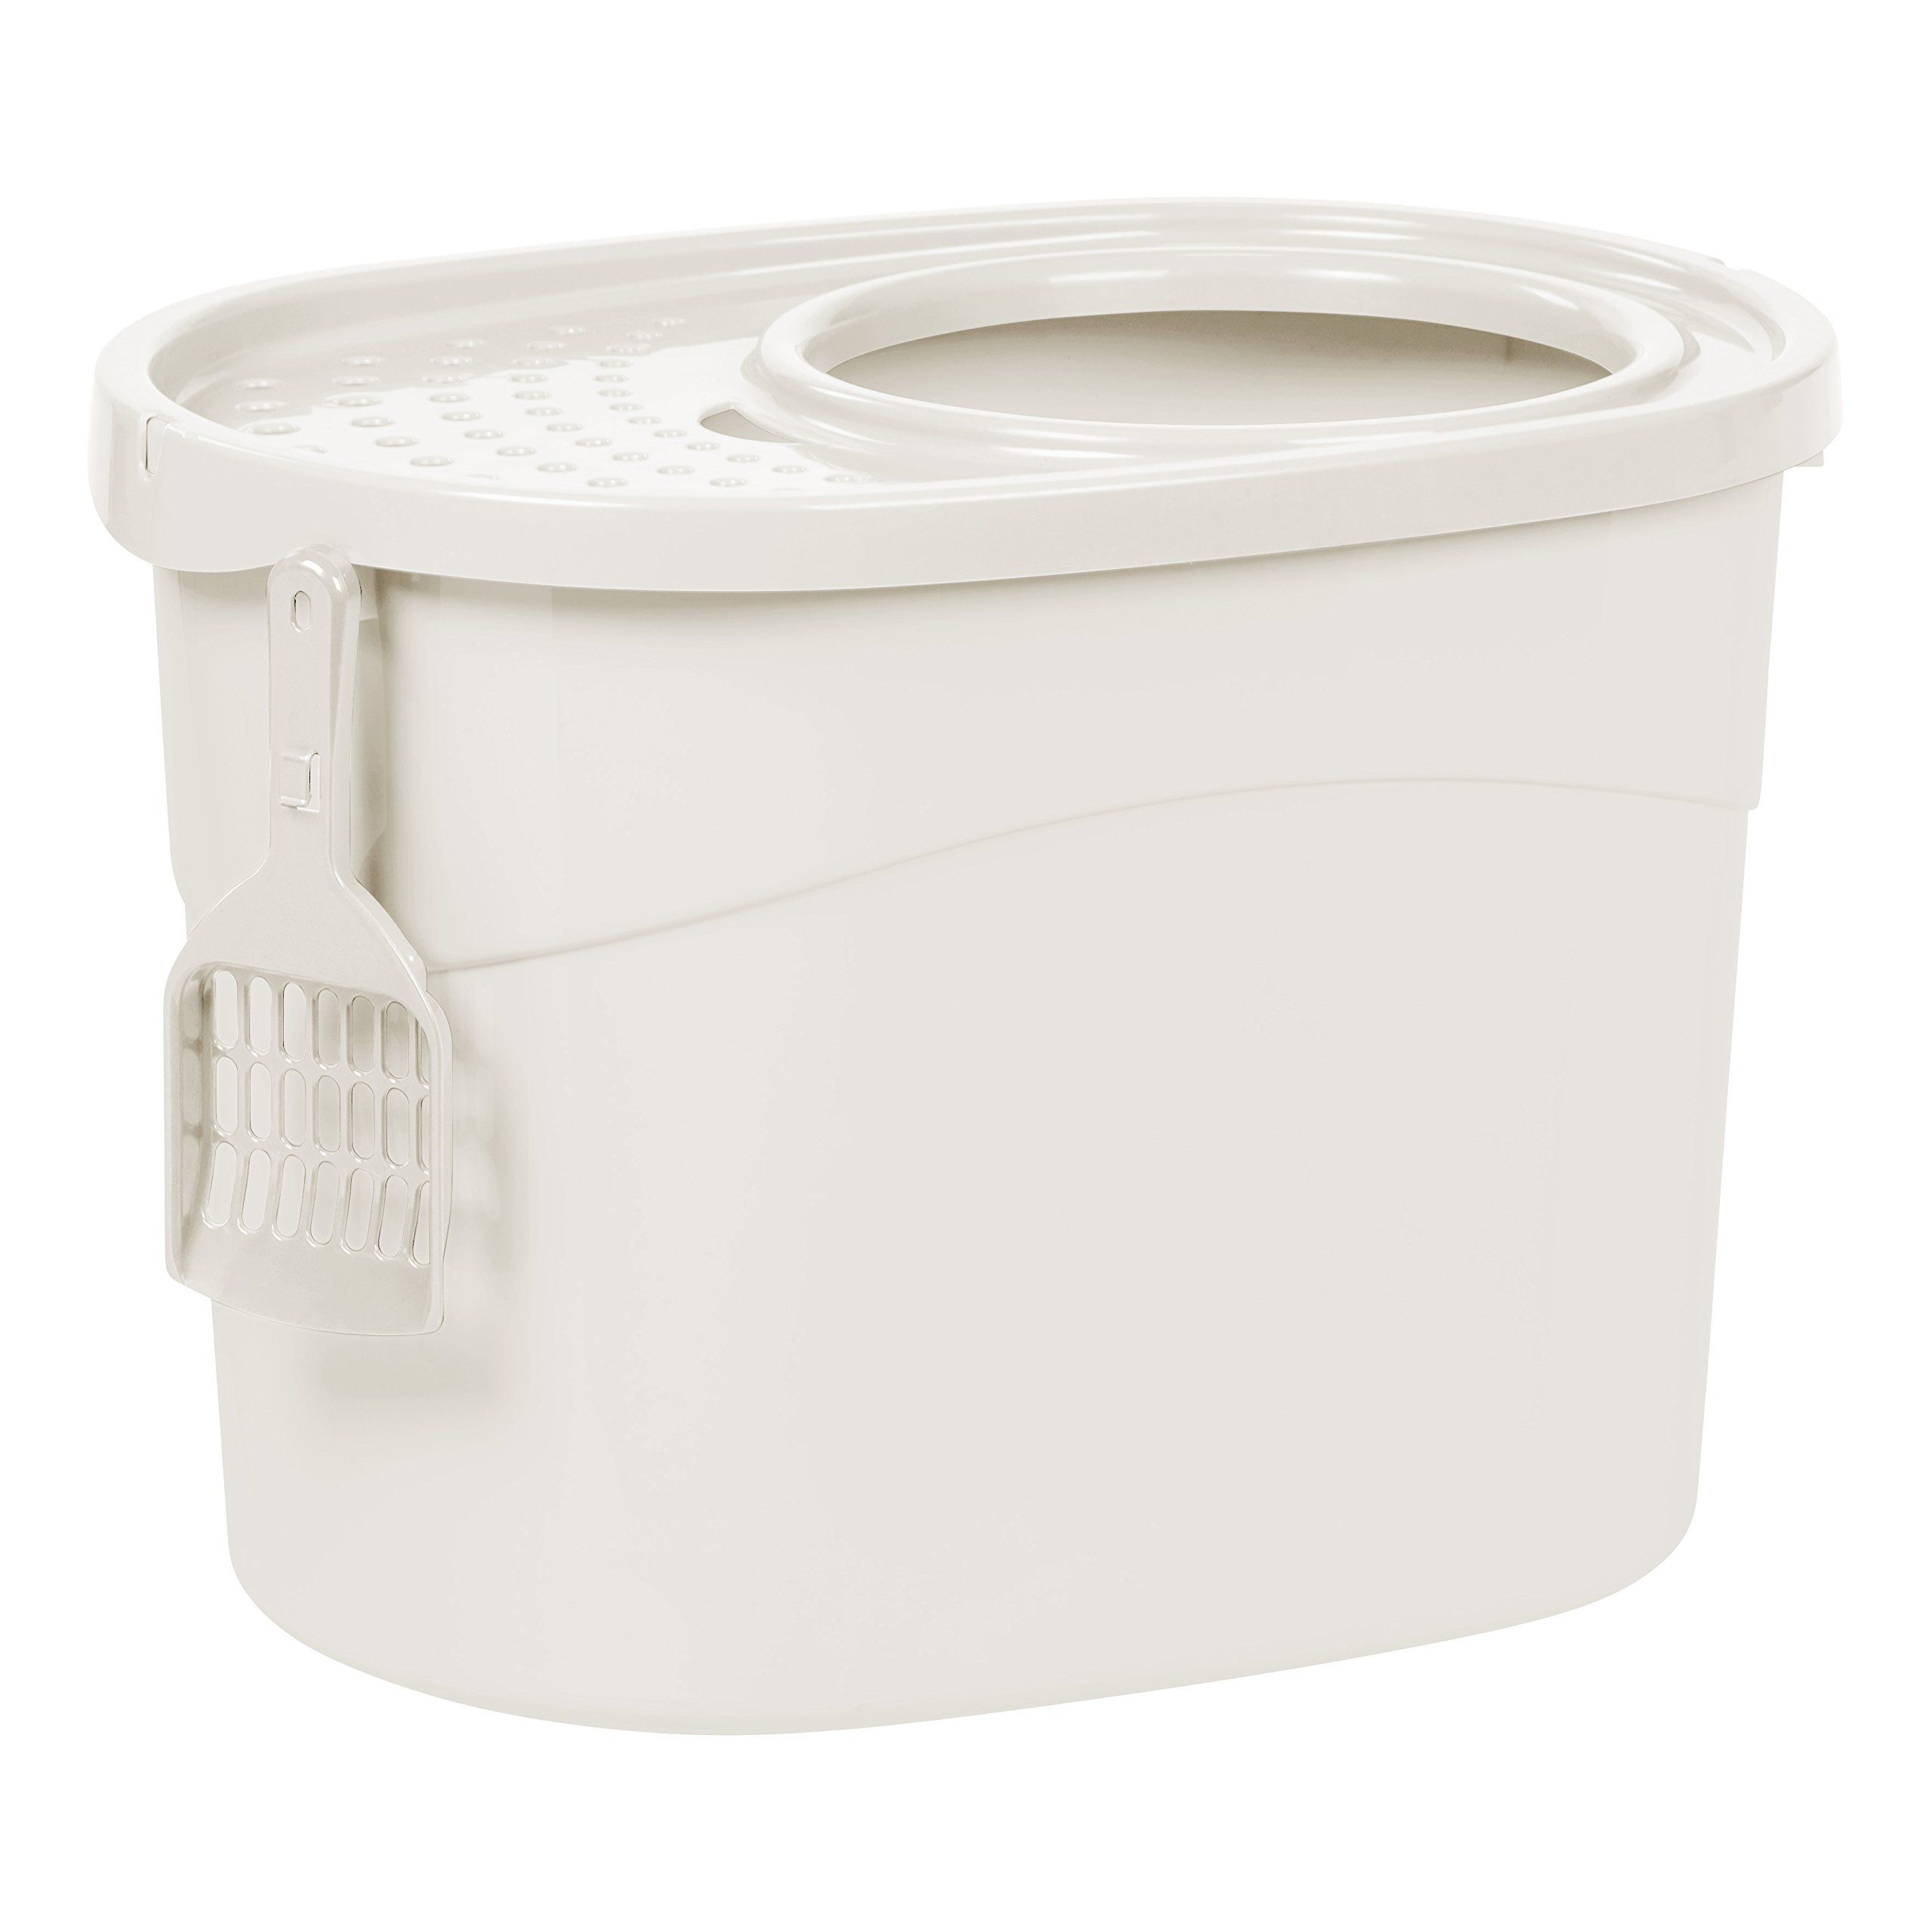 IRIS Top Entry Cat Litter Box with Scoop, White